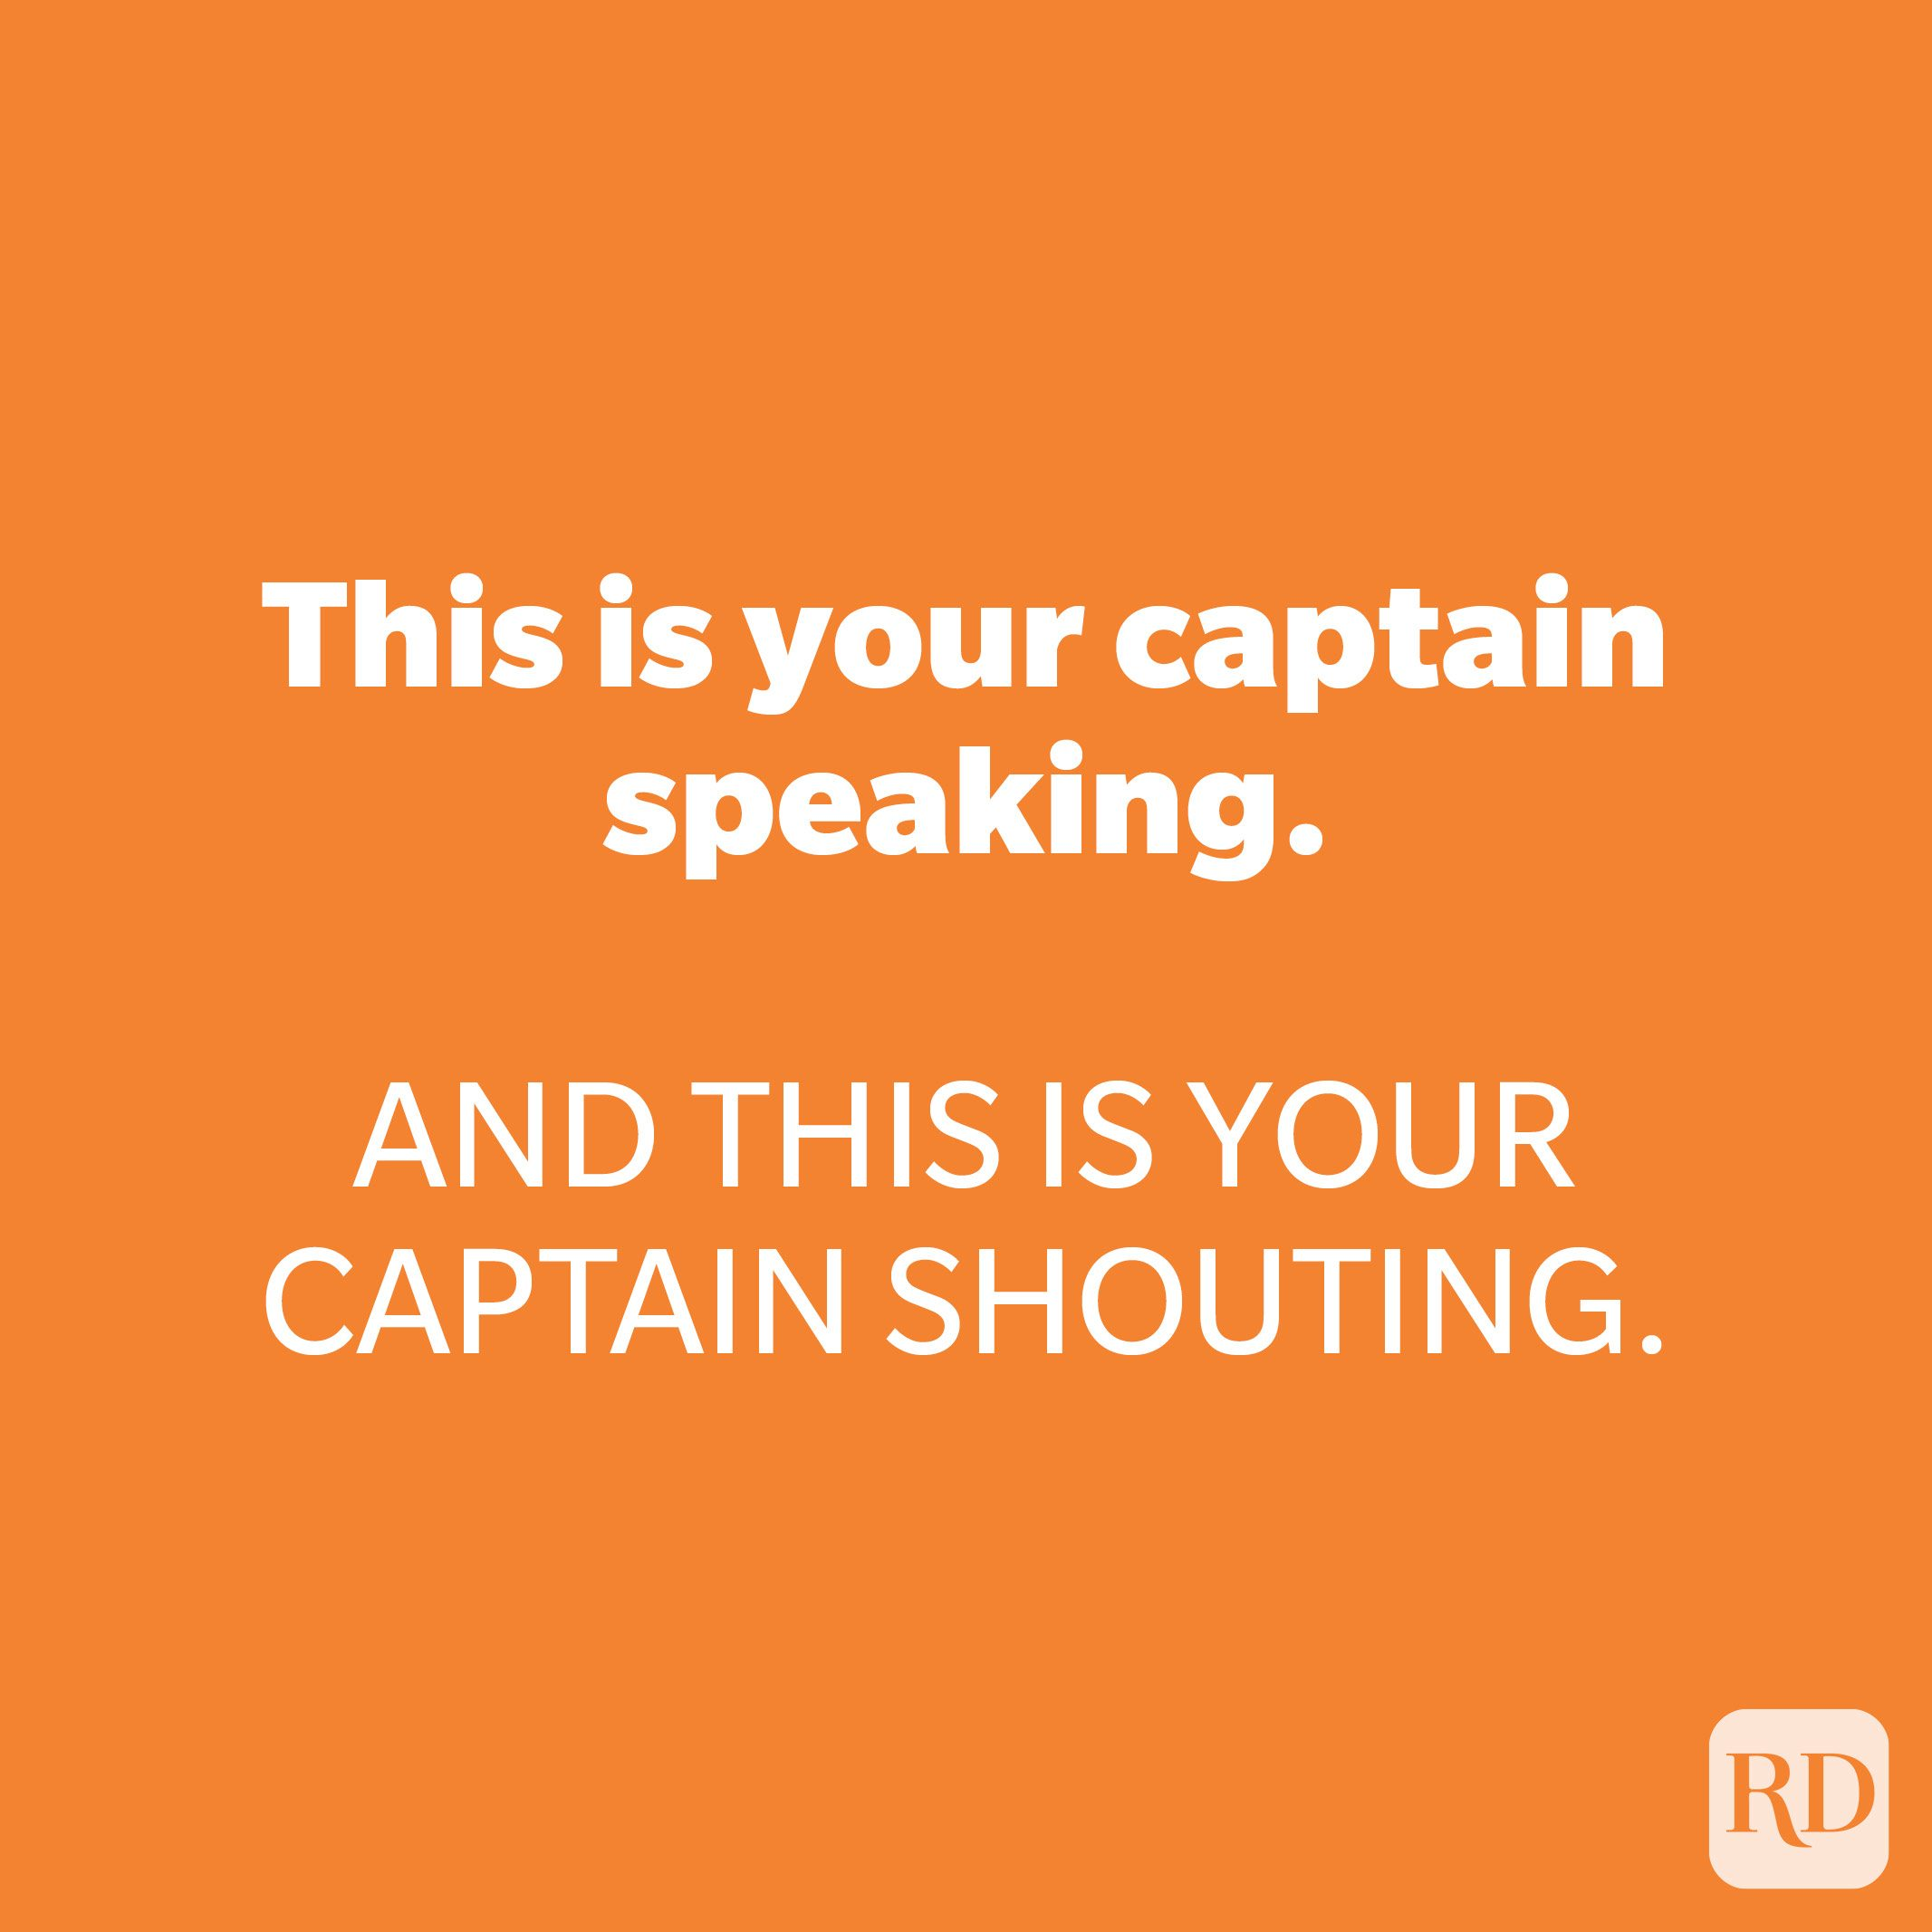 This is your captain speaking.